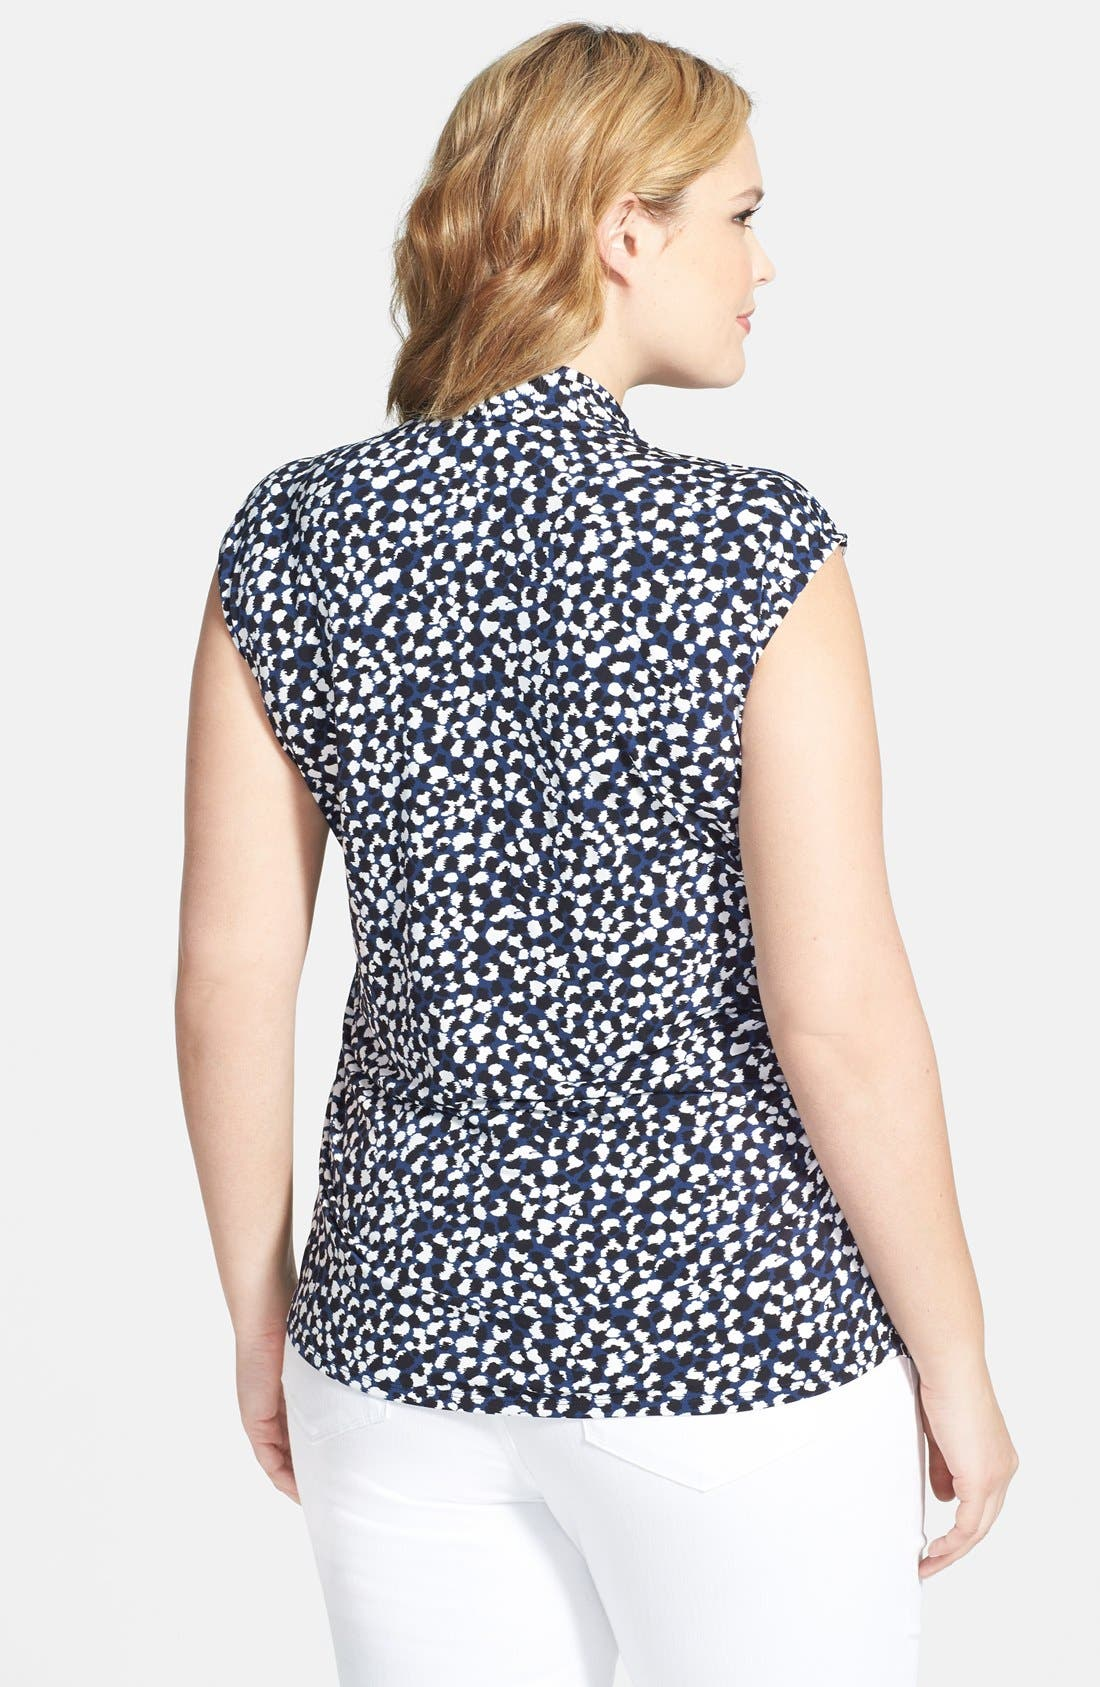 Alternate Image 2  - Vince Camuto 'Doodle Dabs' Print Pleat Front V-Neck Top (Plus Size)